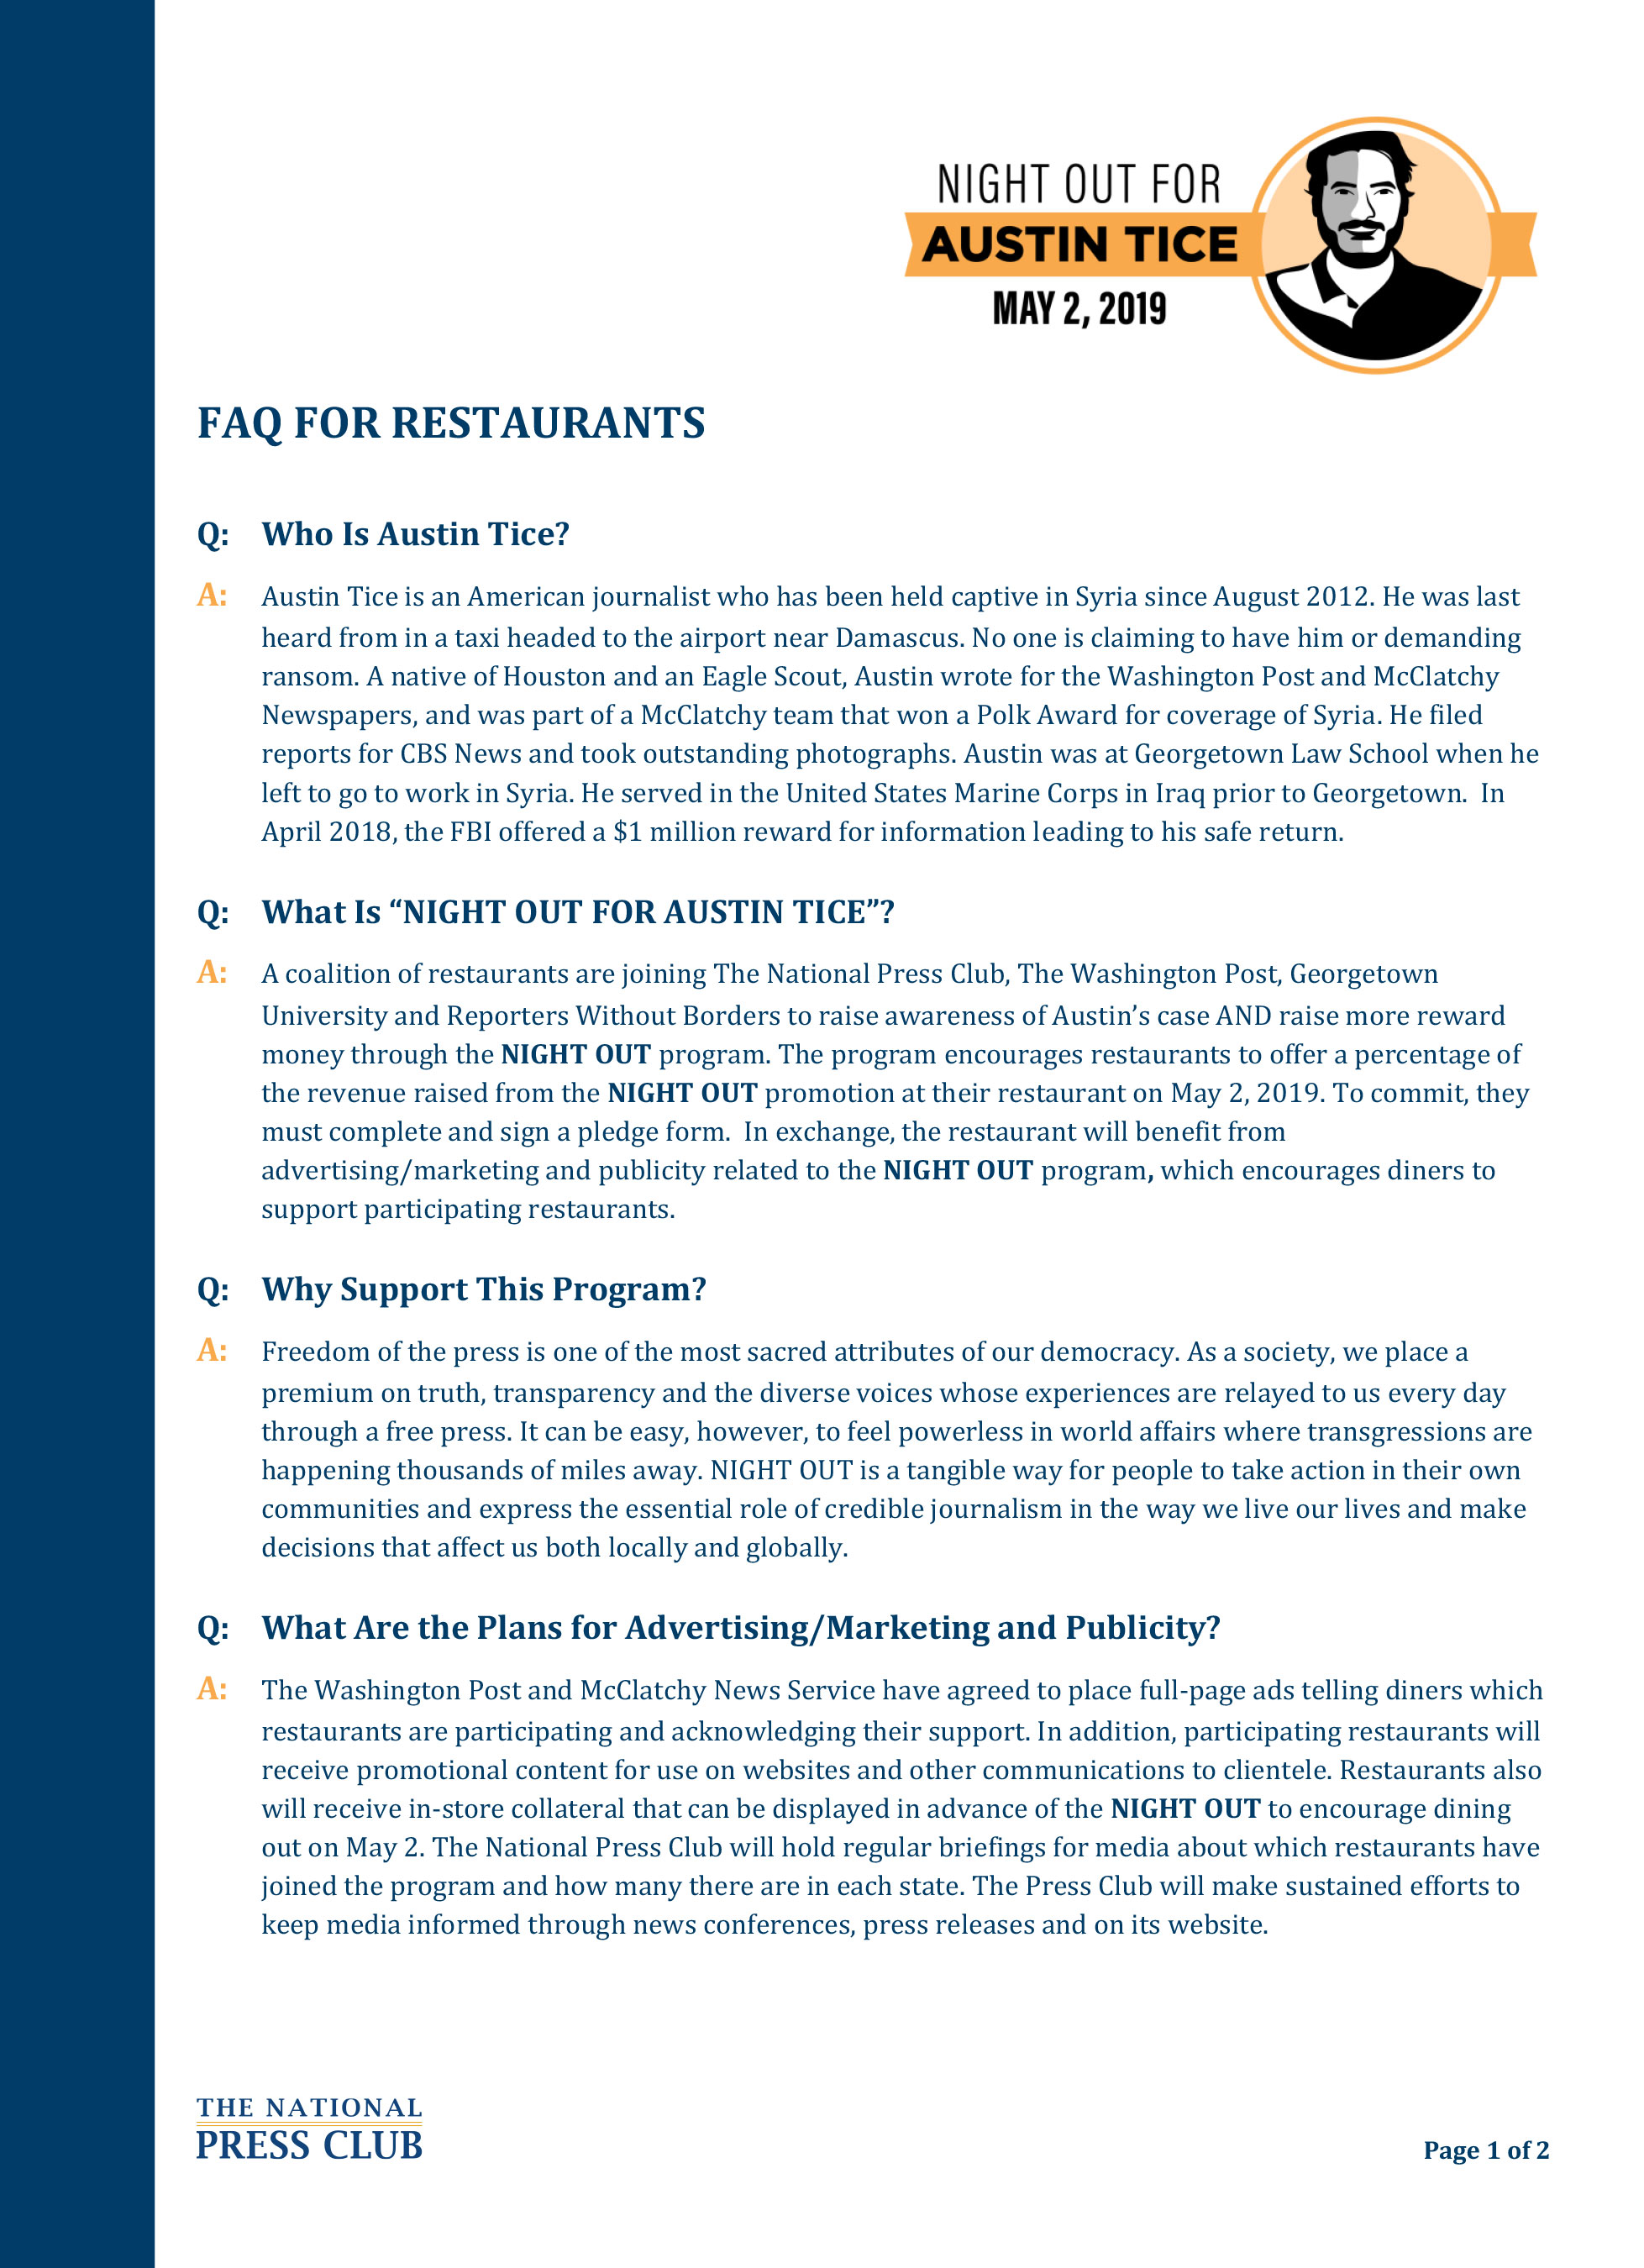 Download: Night Out For Austin Tice FAQs